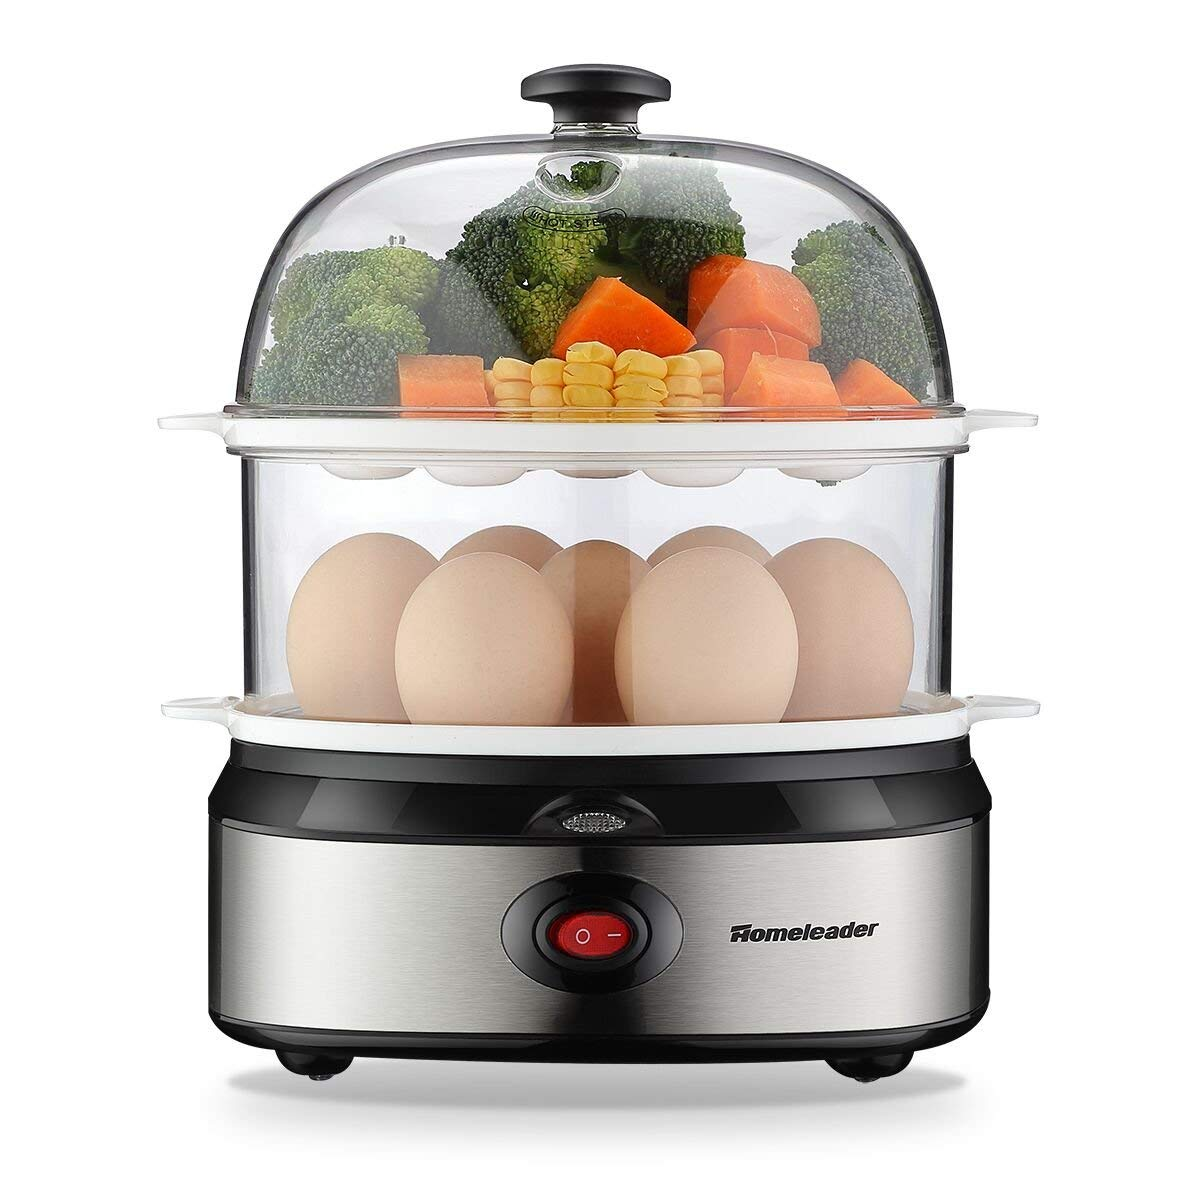 Homeleader Egg Cooker, 360W Egg Maker, Electric Egg Boiler with Steamer Bowl and Measuring Cup, 14 Eggs Capacity, Automatic Shut Off